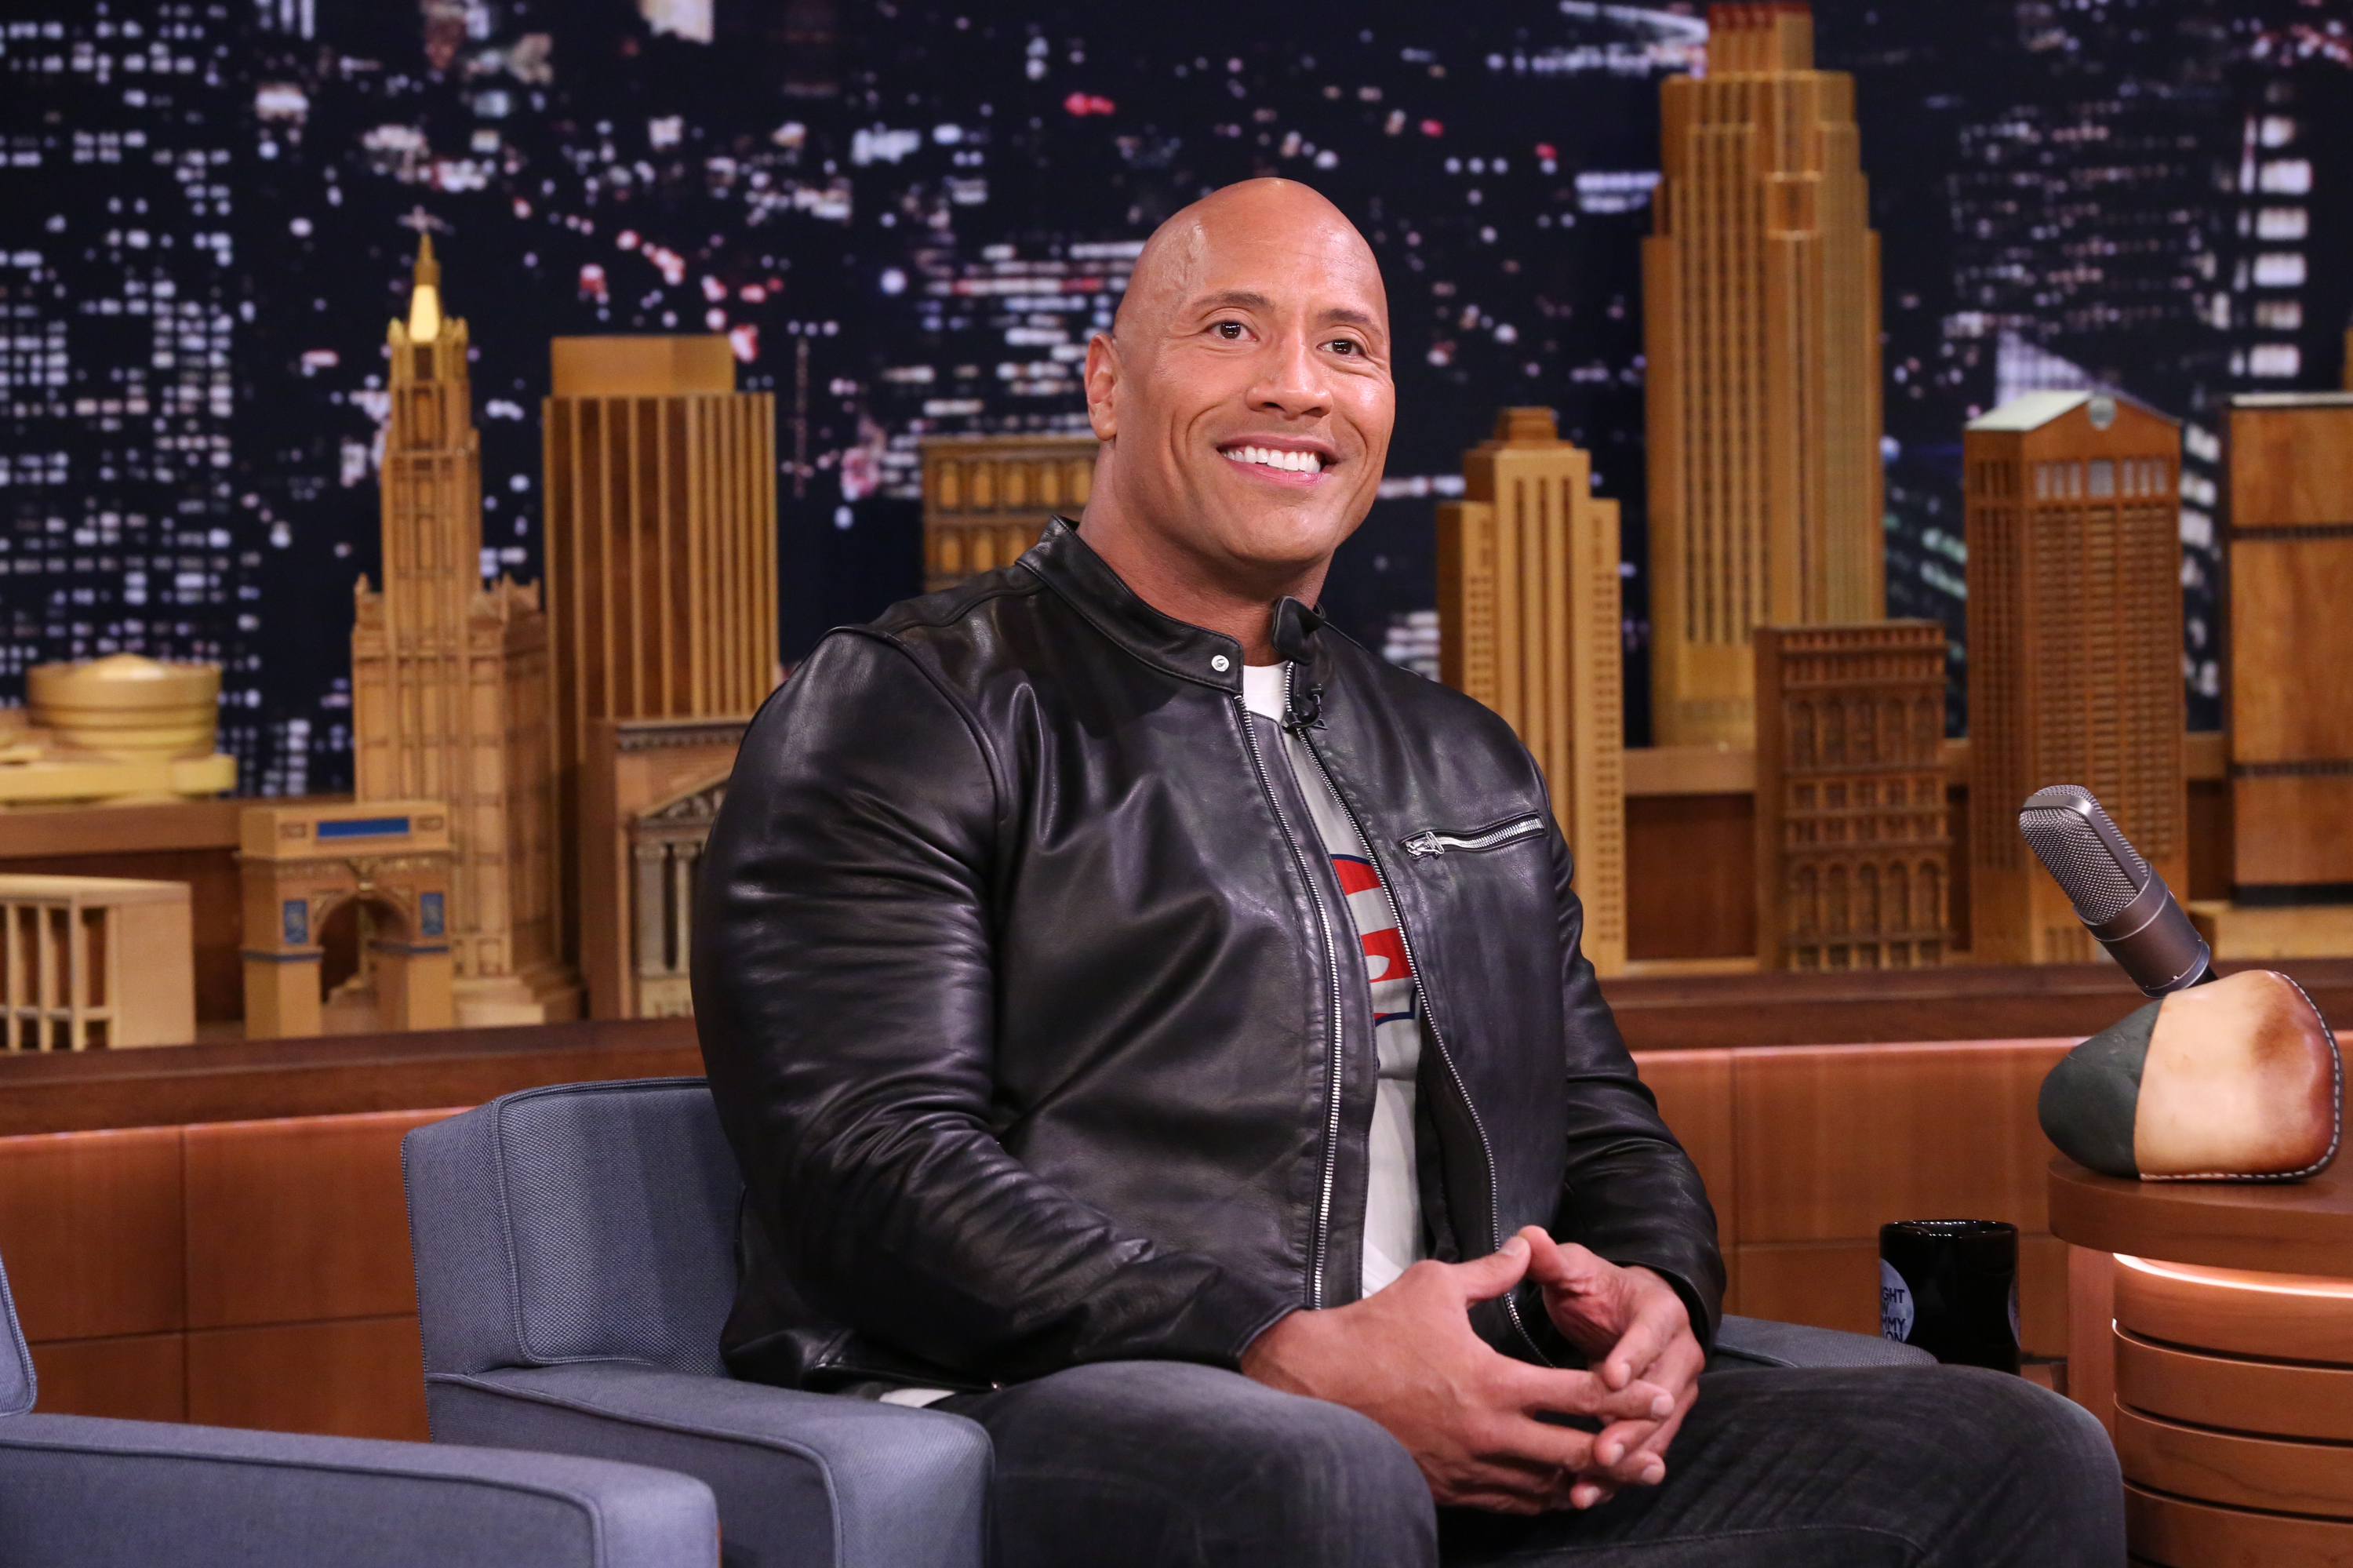 Please watch The Rock sing 'Happy Birthday' to his daughter and have your heart melt